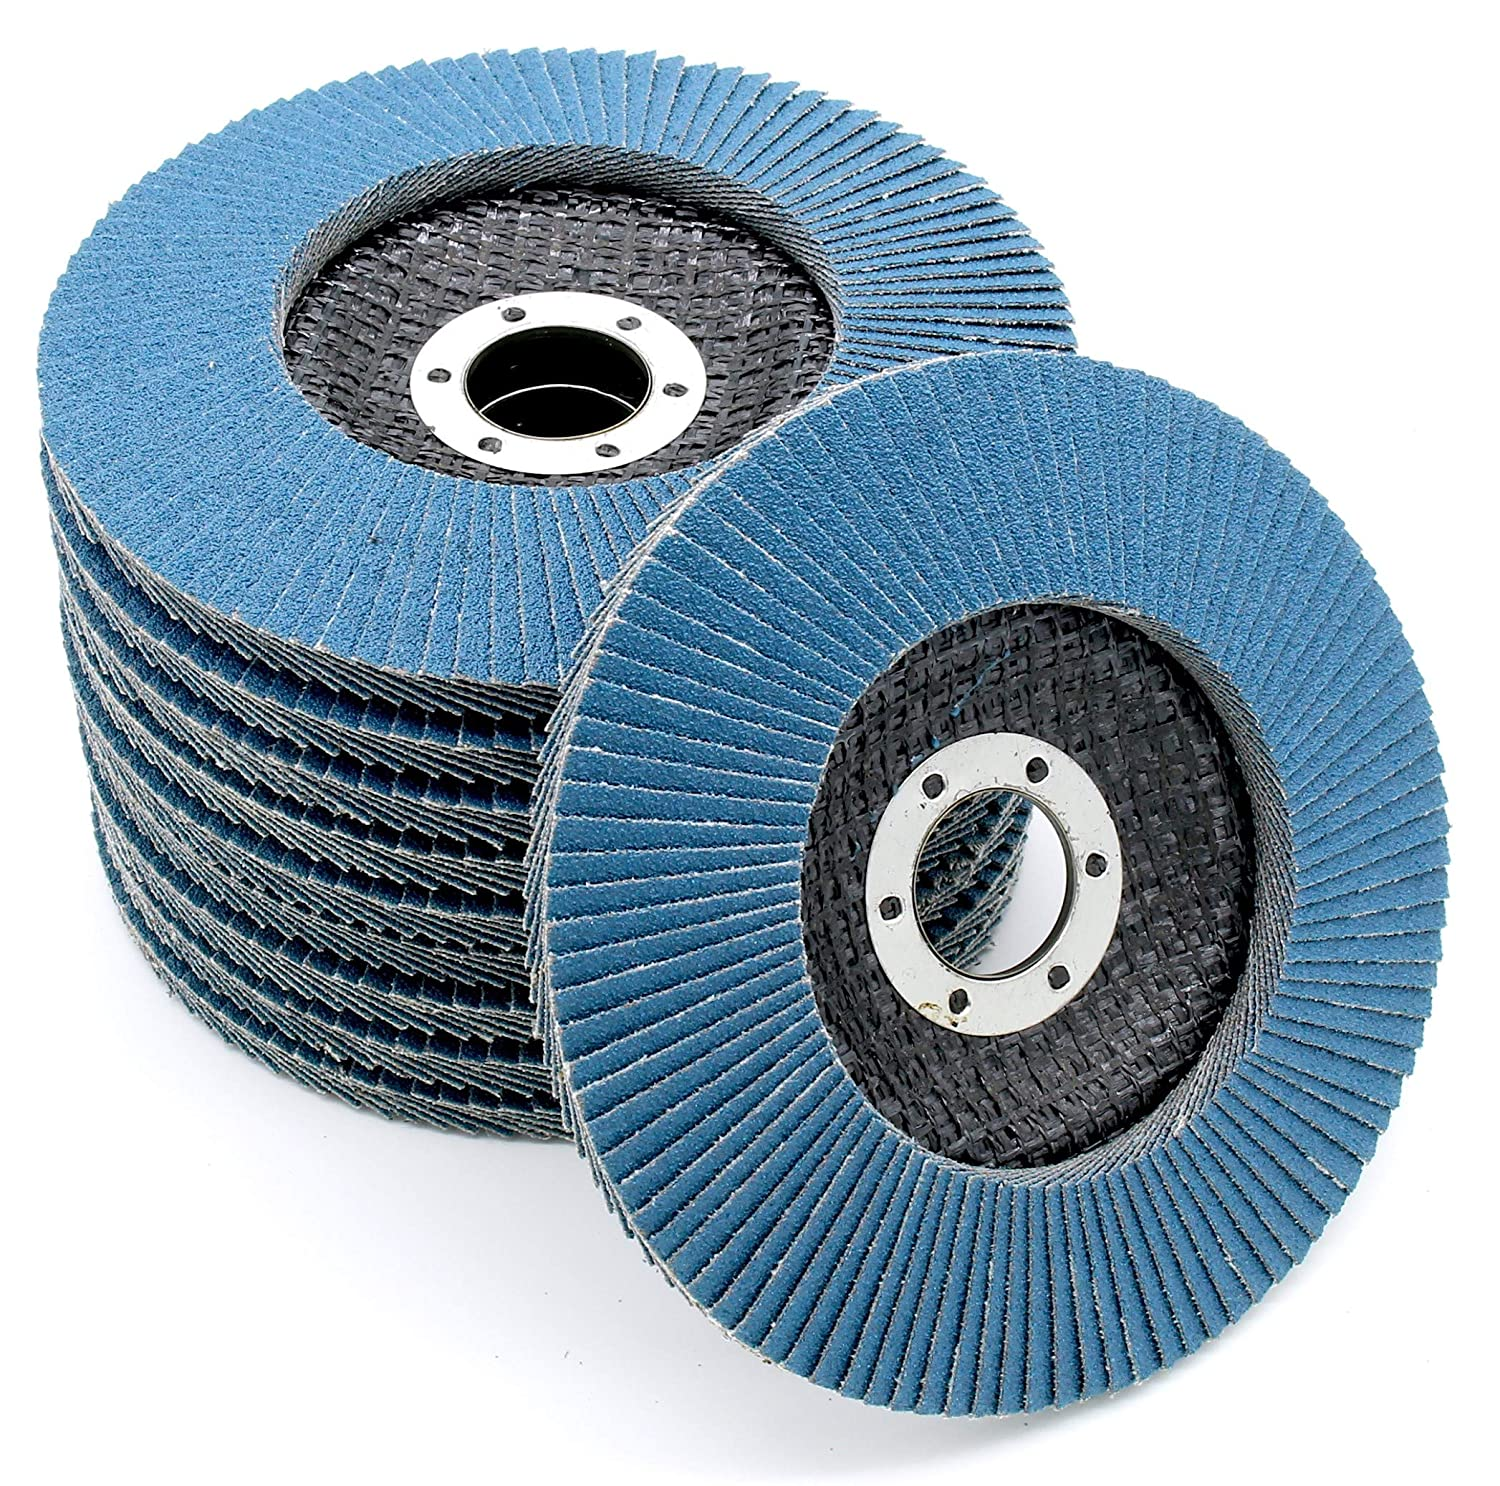 Stainless Steel Flap Discs, 125 mm, 60 Grit, Abrasive Flap Discs - Pack of 10 FD-Workstuff